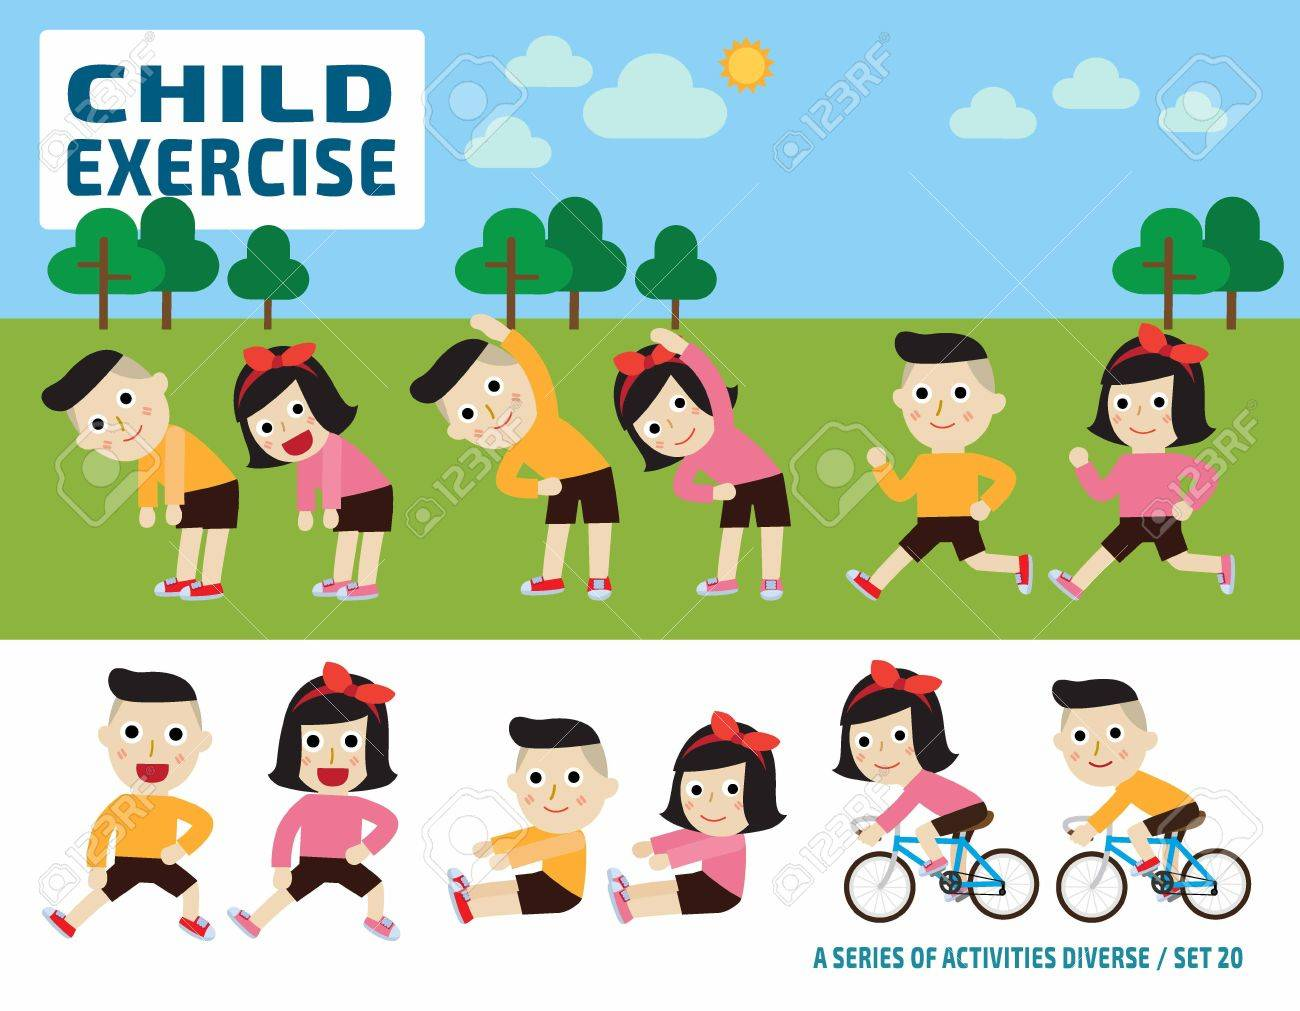 Children Stretching Flexibility Exercise Concept Infographic Royalty Free Cliparts Vectors And Stock Illustration Image 53903258